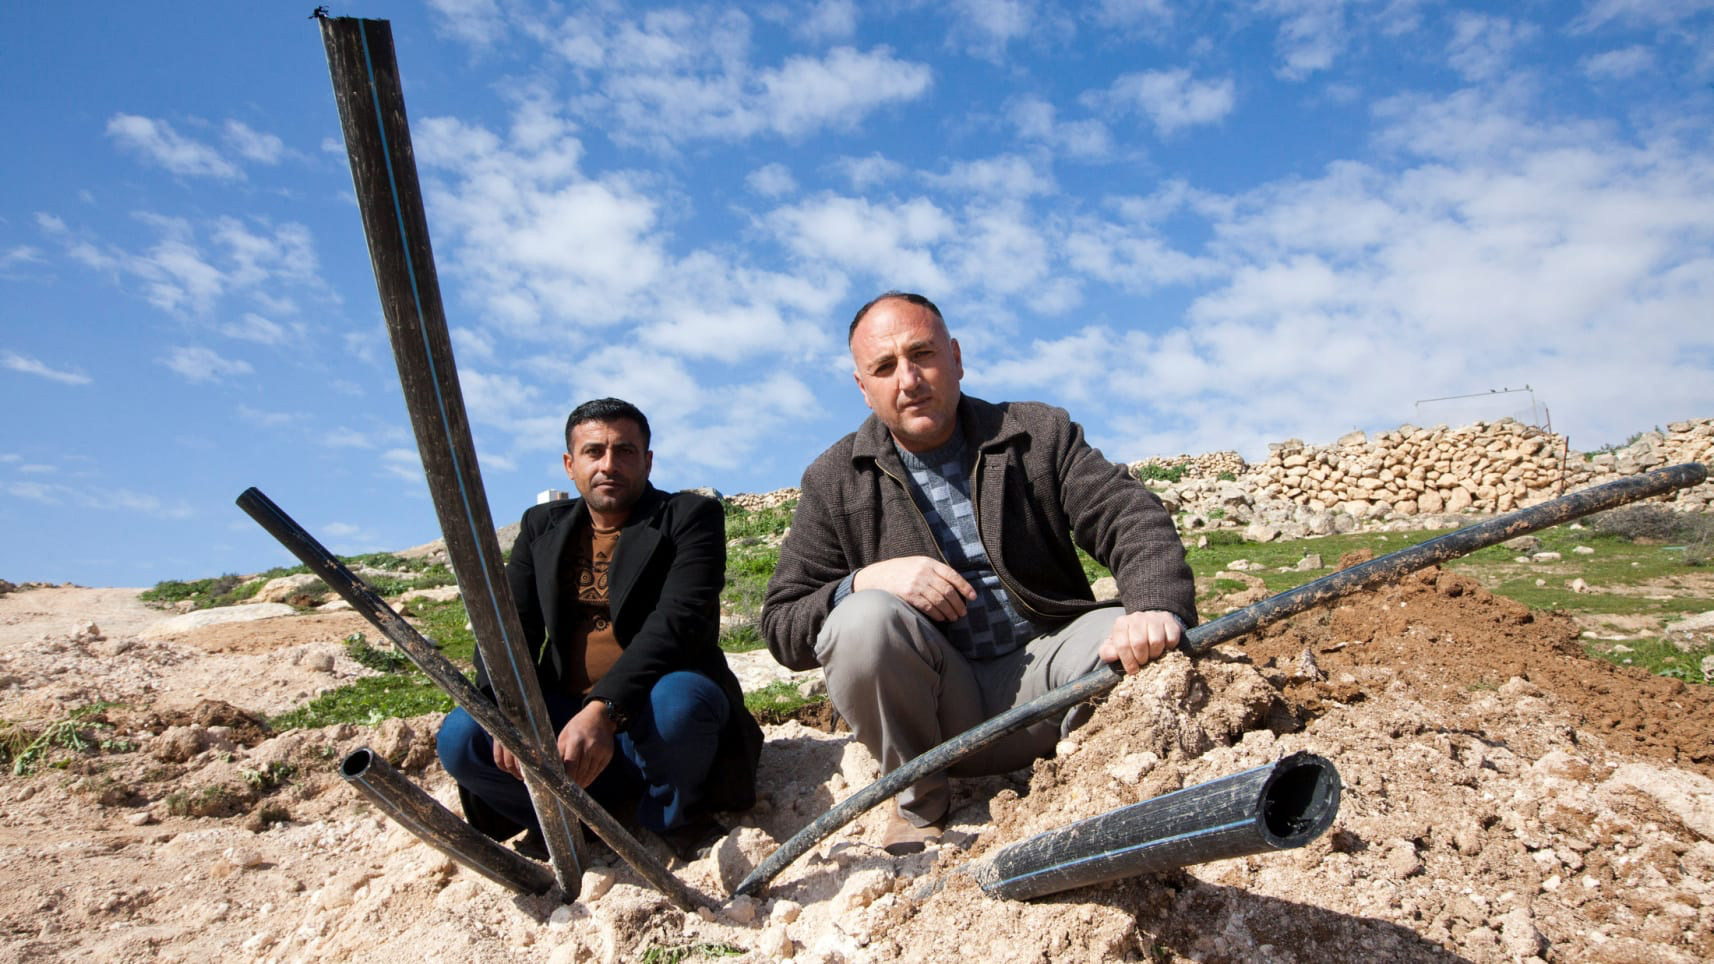 Younes (right) and al-Raba'i with what remains of the water pipes. February 17, 2019. Photo Credit:  Eliyahu Hershkovitz